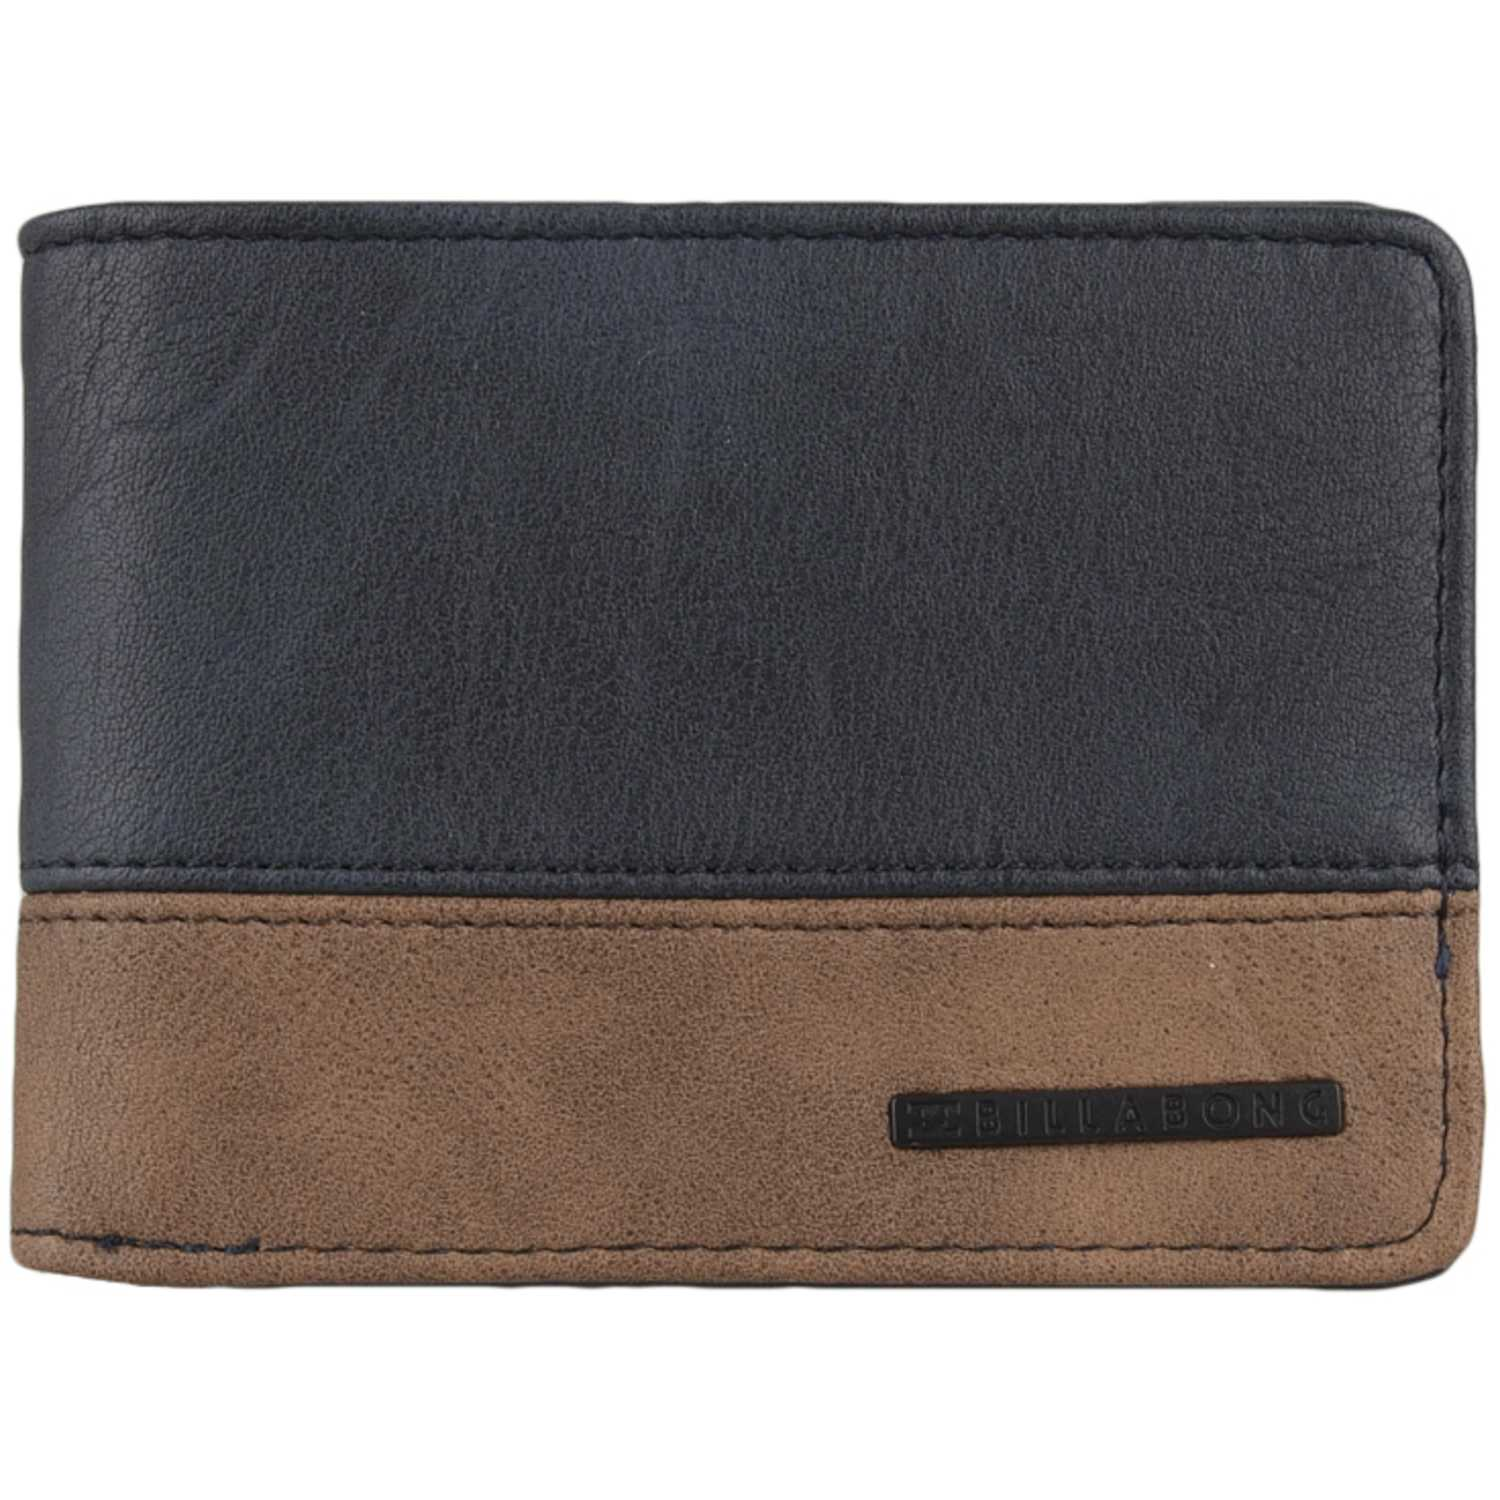 Billetera de Hombre Billabong Acero/marron dimension wallet